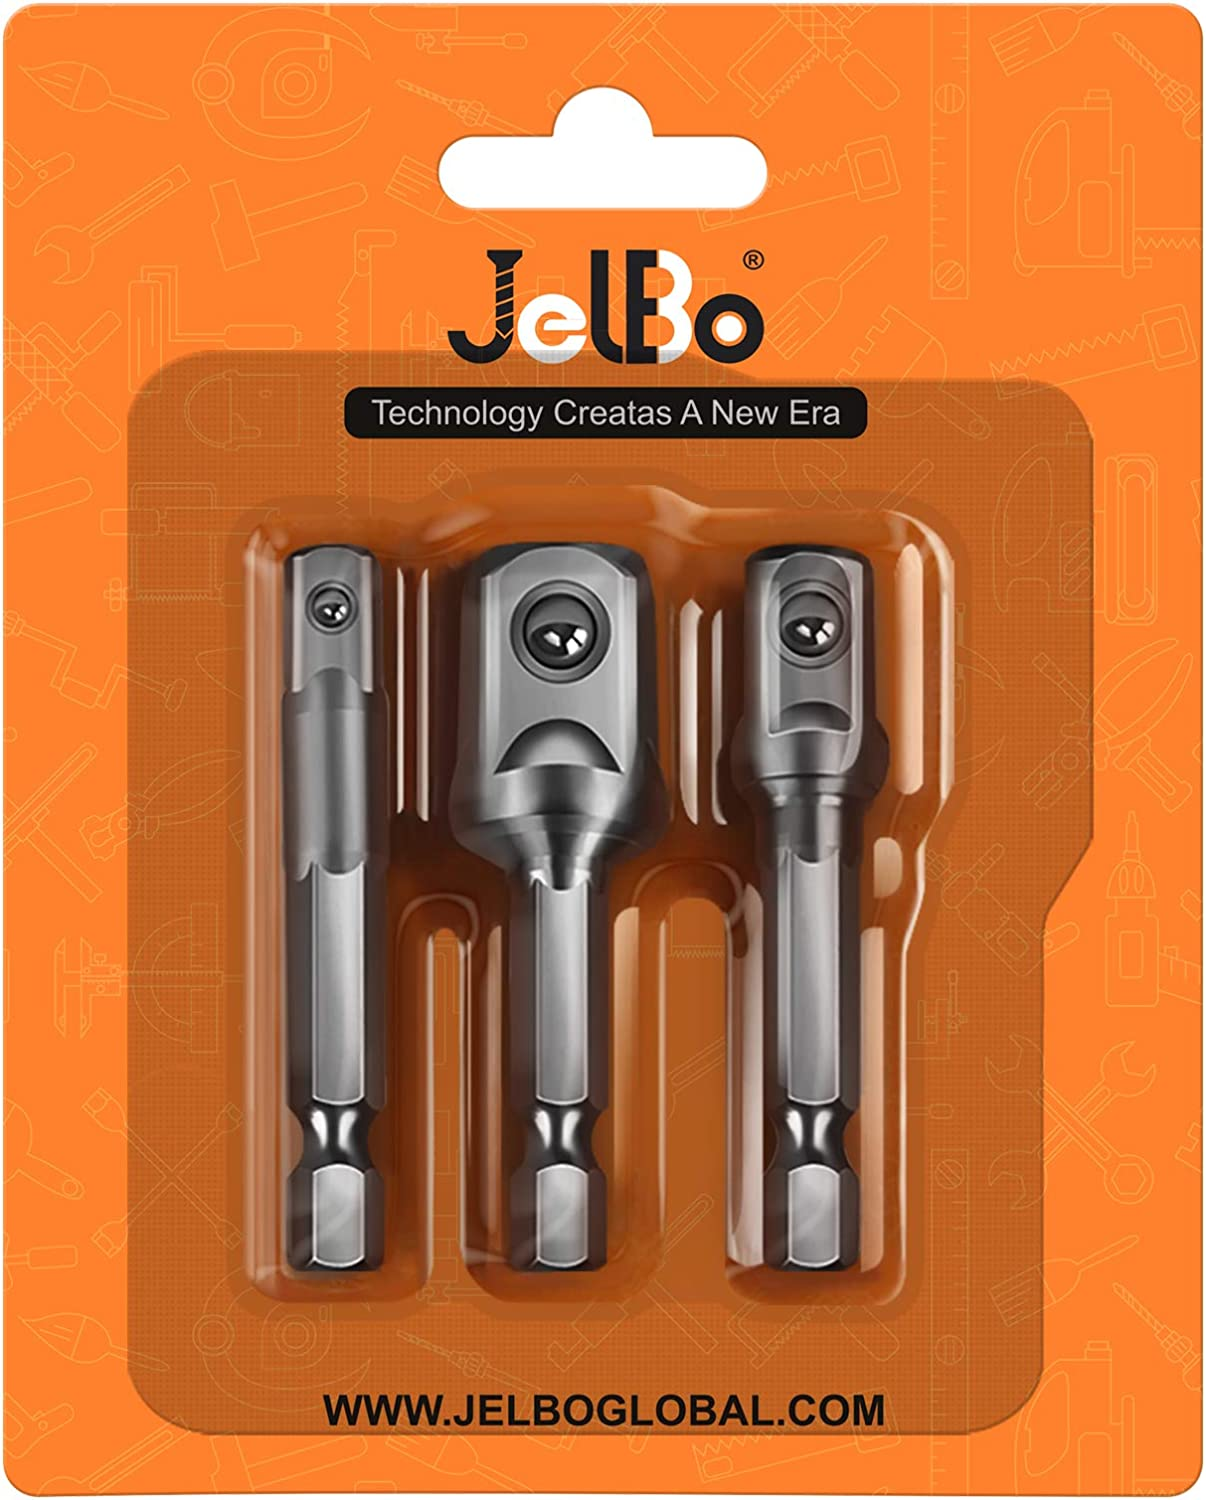 JelBo Flexible Shaft Extension Bits Right Angle Drill Adapter and Impact Driver Socket Adapter Set Quick Connect Adapter of Power Tools Accessories by Electric Dril